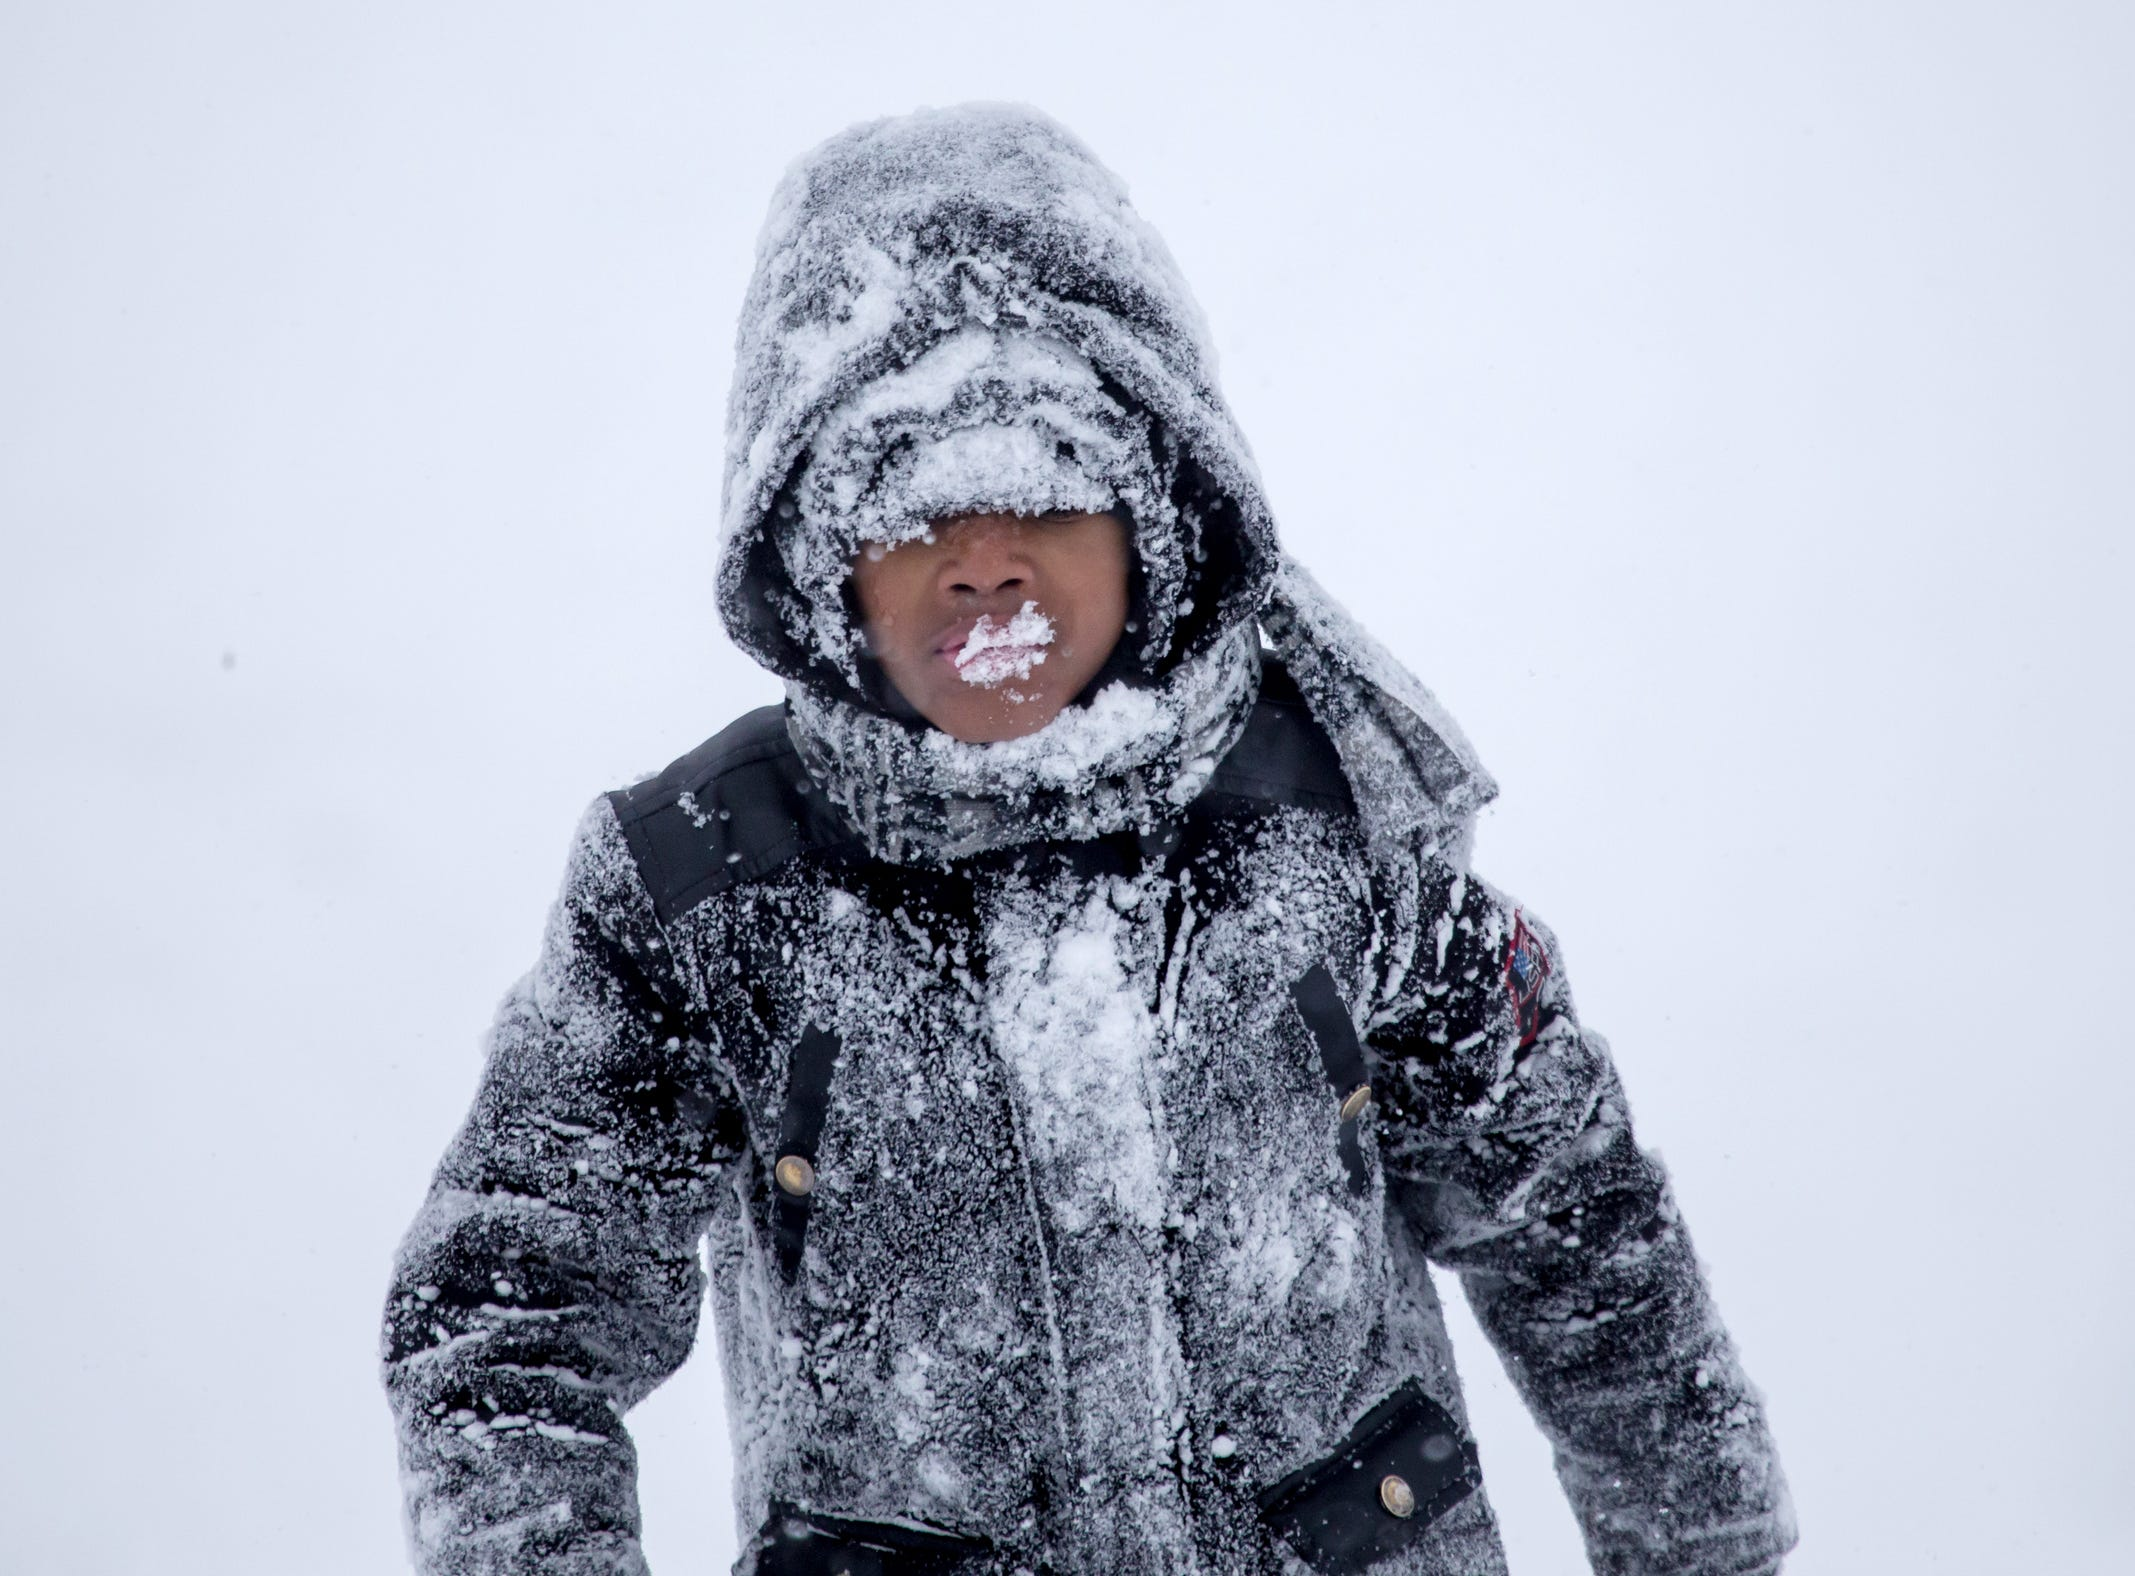 DJ Shackelford of Flint walks up the hill with a mouth full of snow while sledding at Flint Southwestern Academy in Flint on Monday, January 28, 2019.